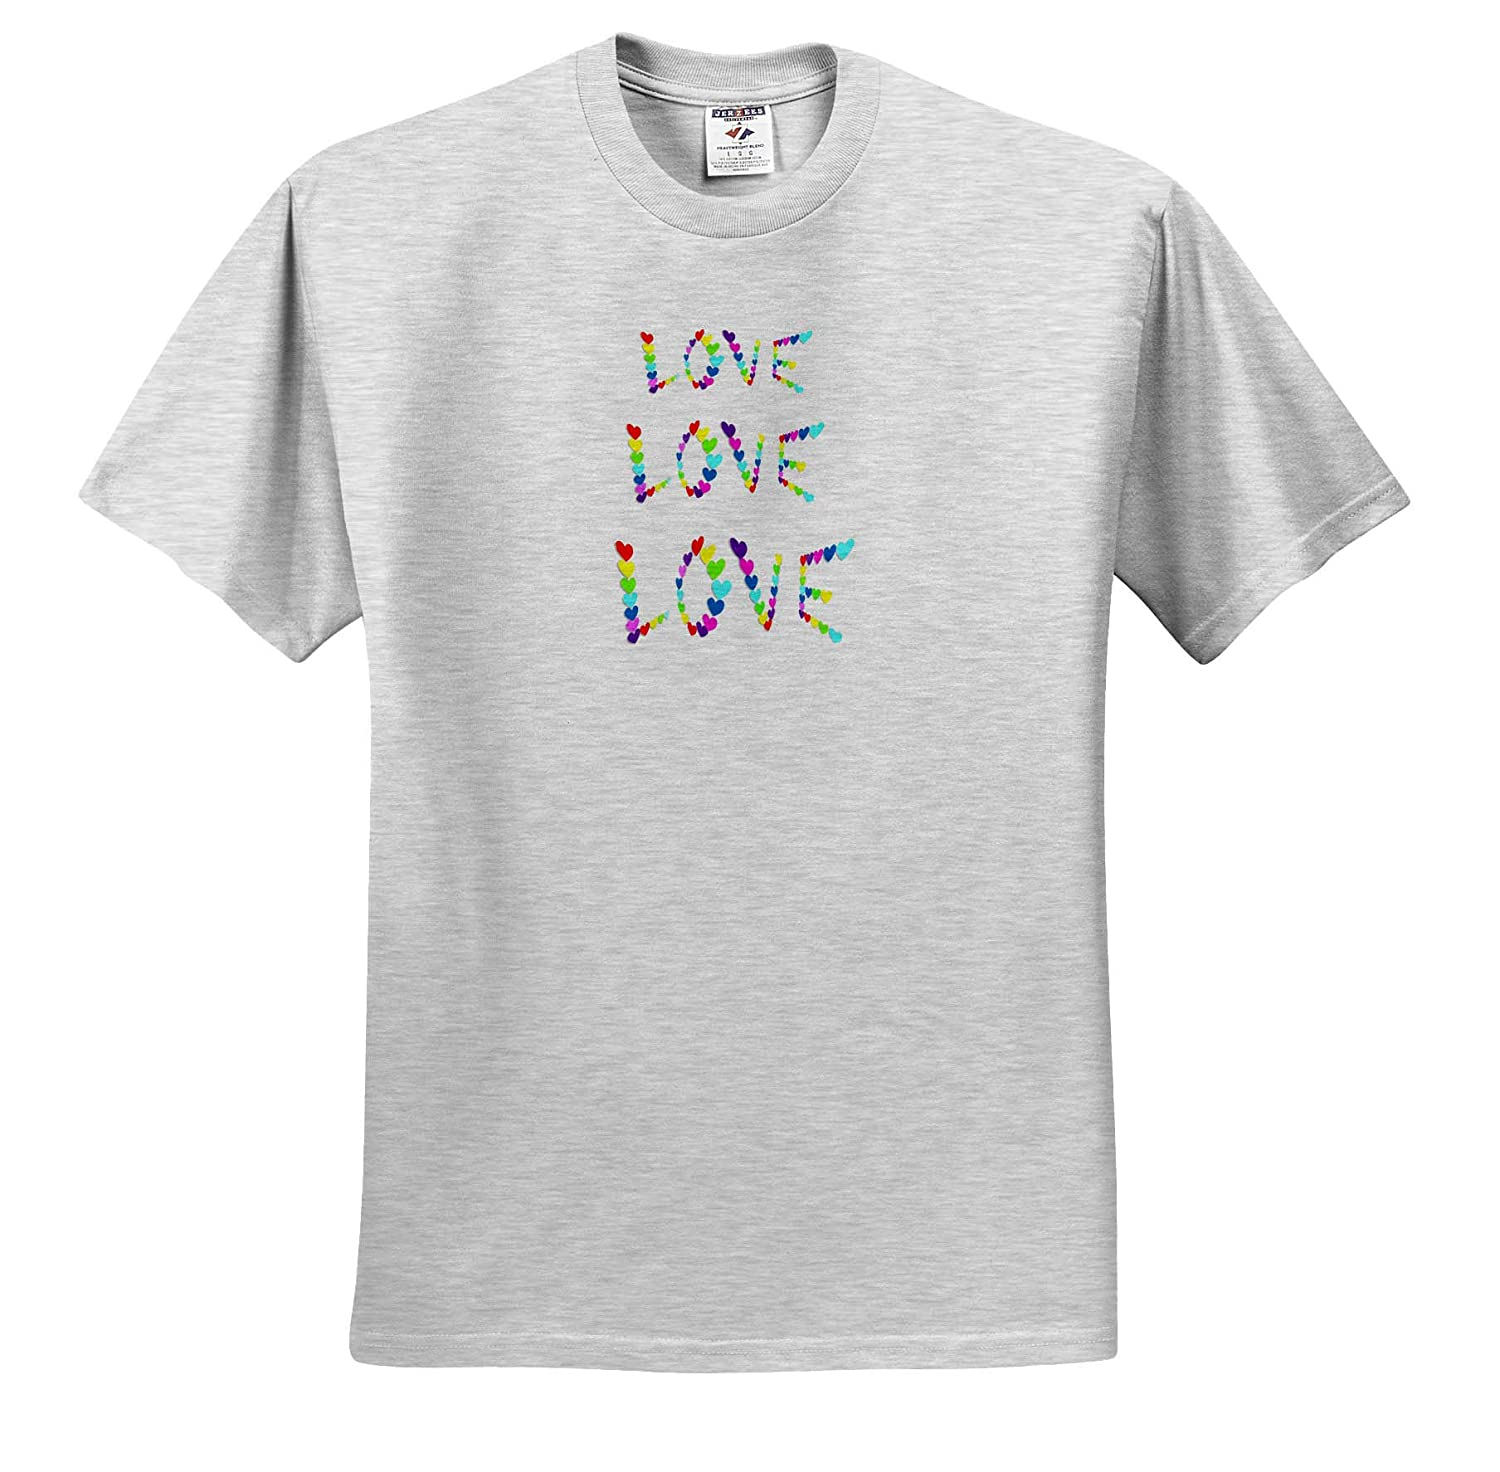 ts/_317104 Adult T-Shirt XL 3dRose Lens Art by Florene Image of Hearts Make Up The Three Words of Love All Things Aqua